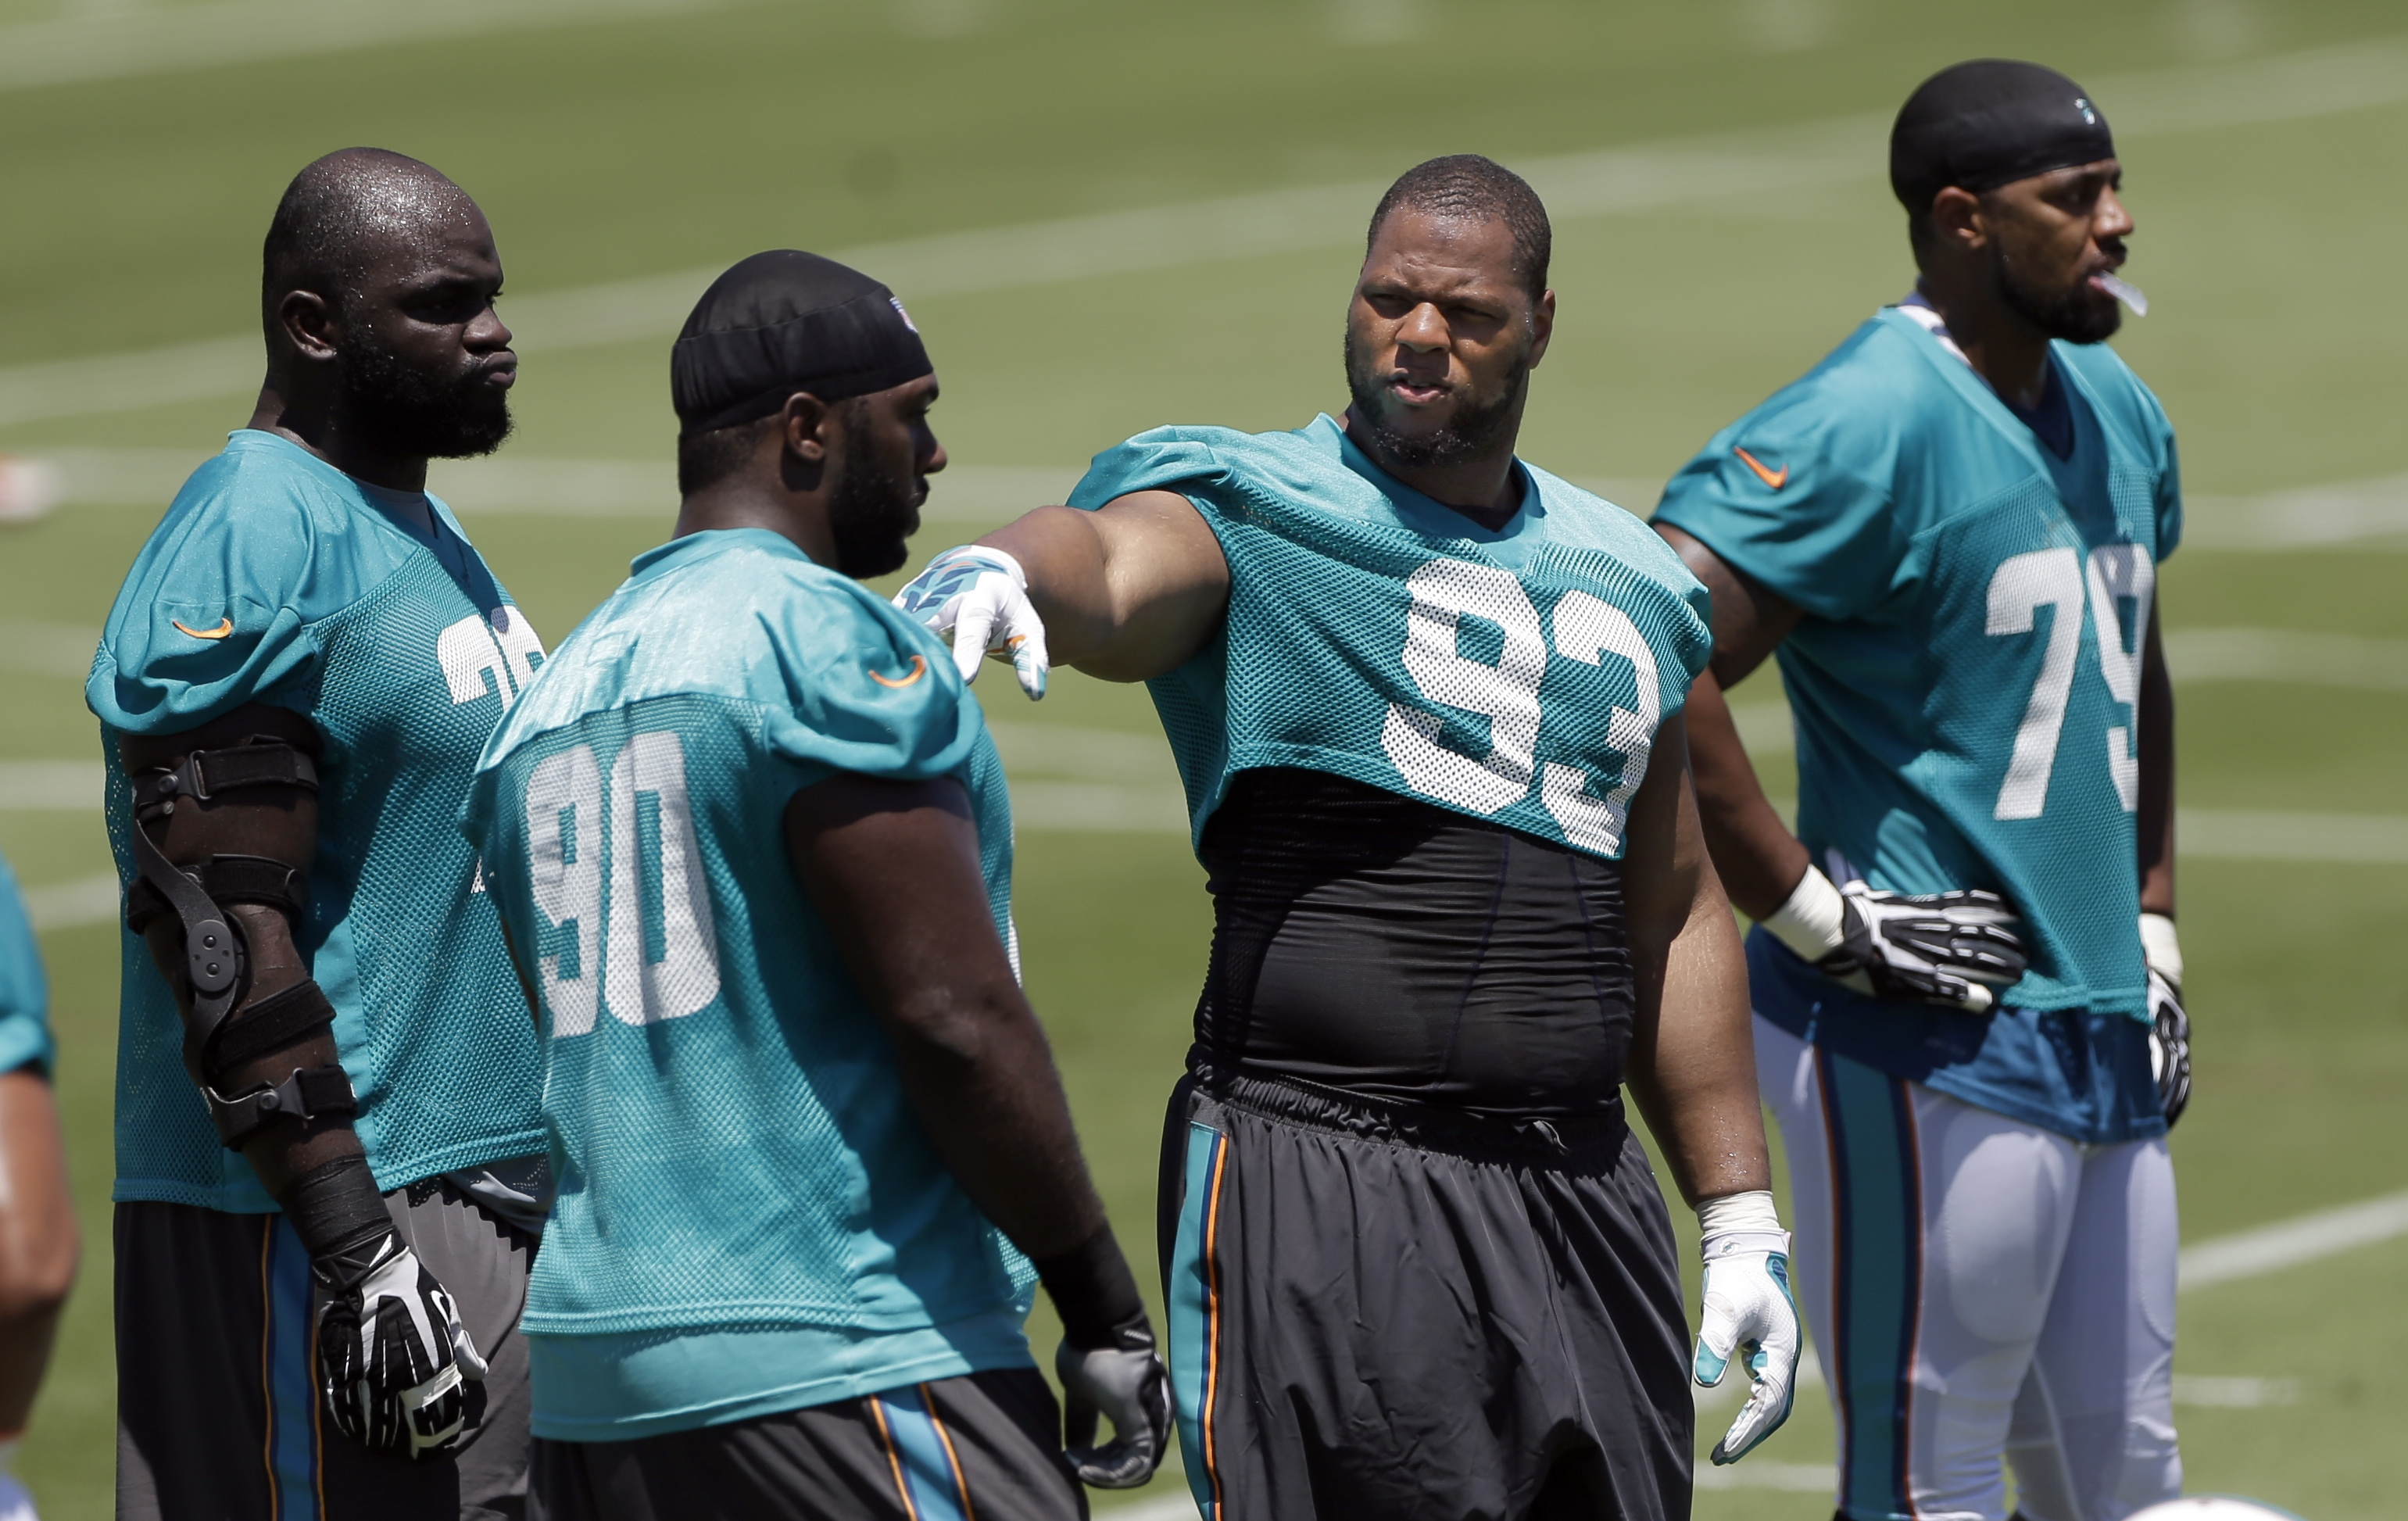 Miami Dolphins defensive tackle Ndamukong Suh (3) gestures as he talks to Earl Mitchell (90) during NFL football minicamp, Tuesday, June 16, 2015, in Davie, Fla. (AP Photo/Alan Diaz)